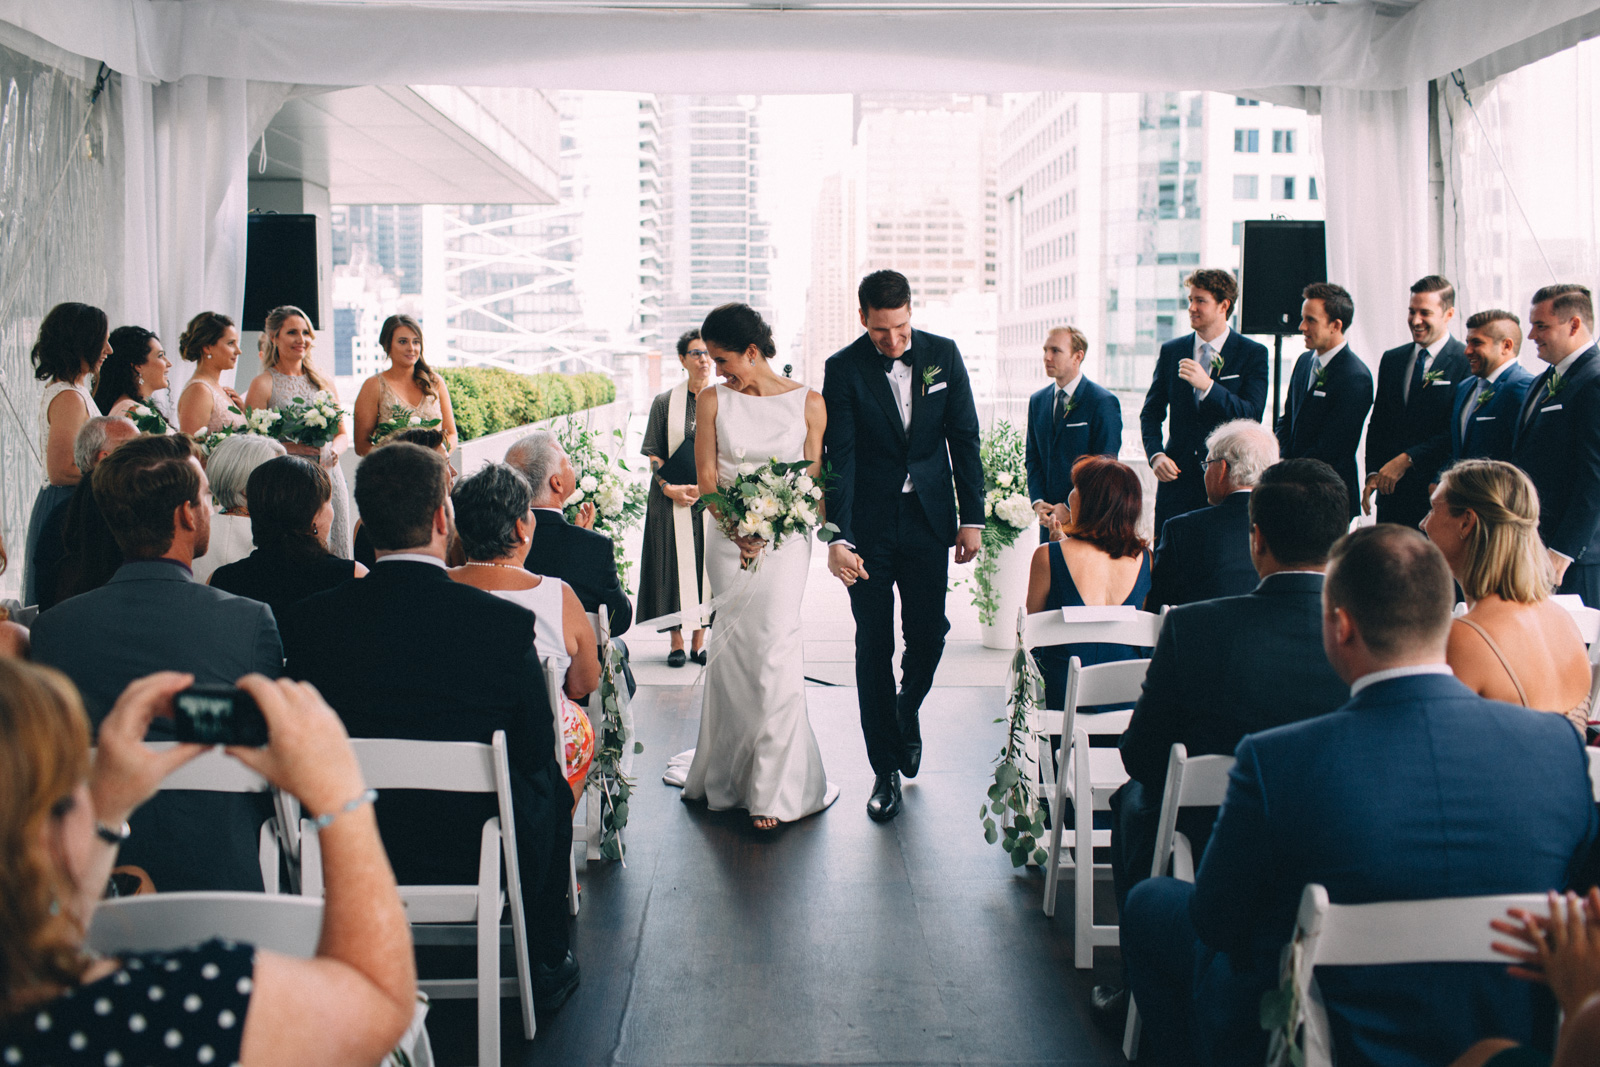 Malaparte-wedding-photography-Toronto-by-Sam-Wong-of-Visual-Cravings_52